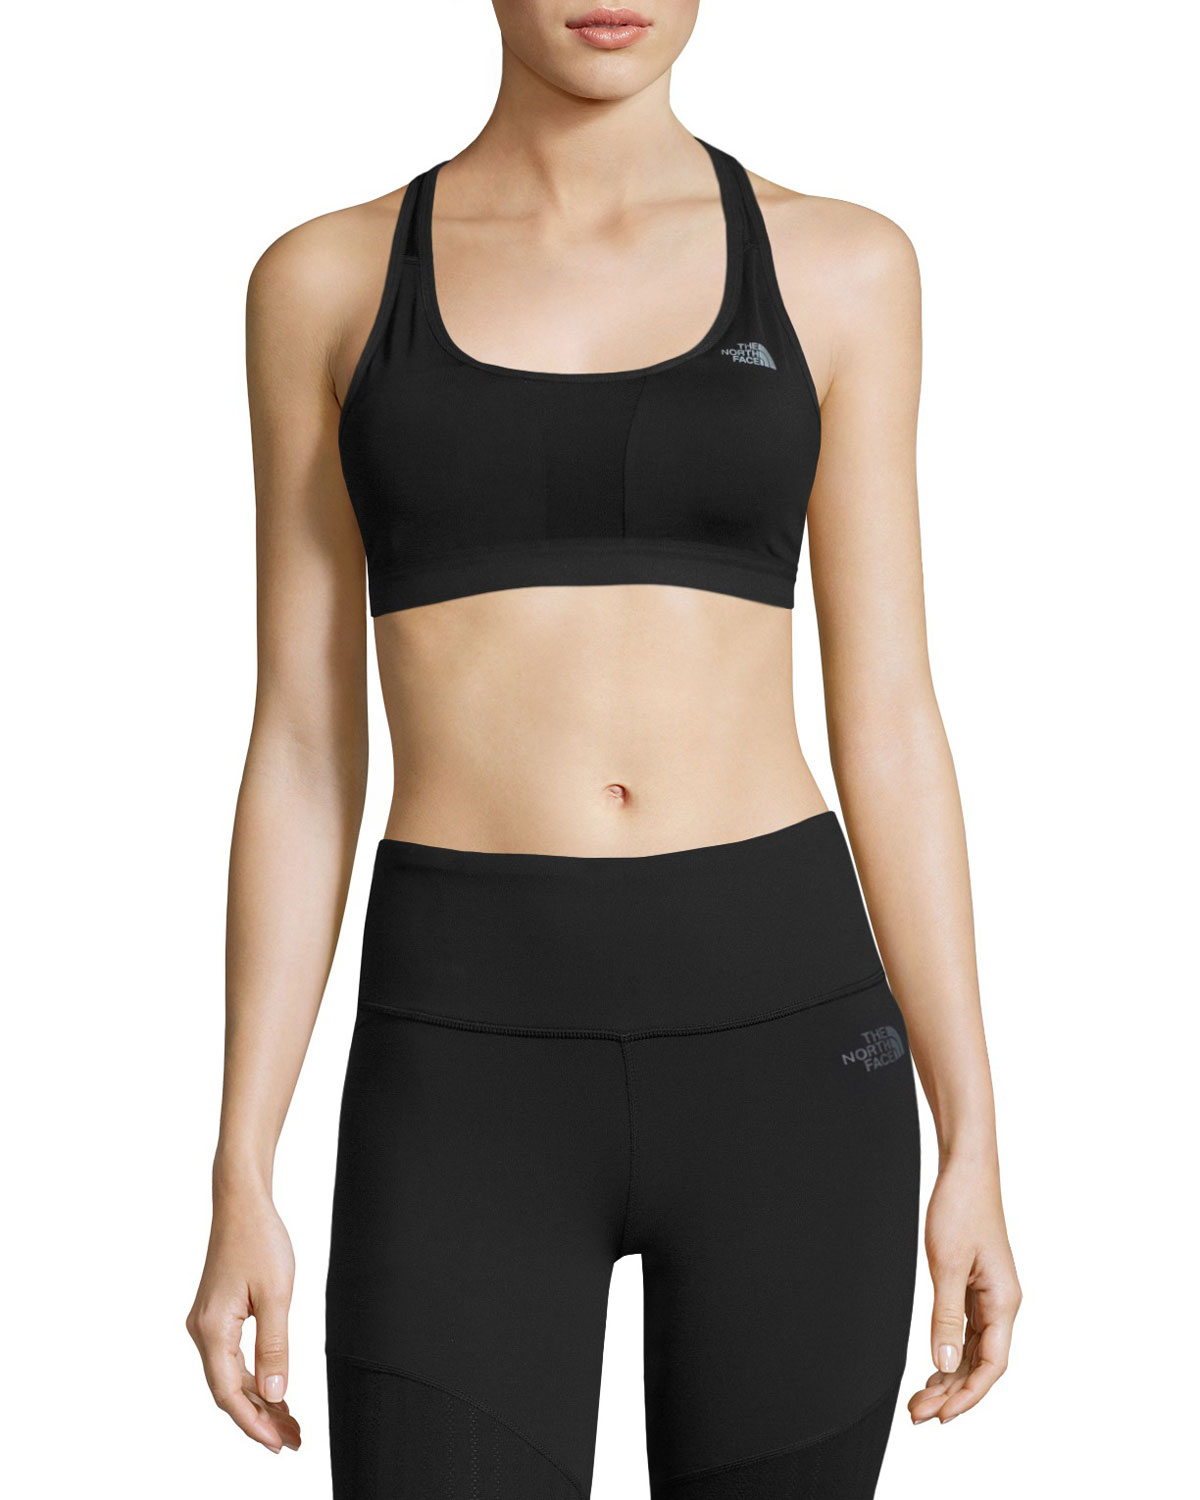 964a6f4ac94ce The North Face Stow-N-Go IV Sports Bra for A-B Cups